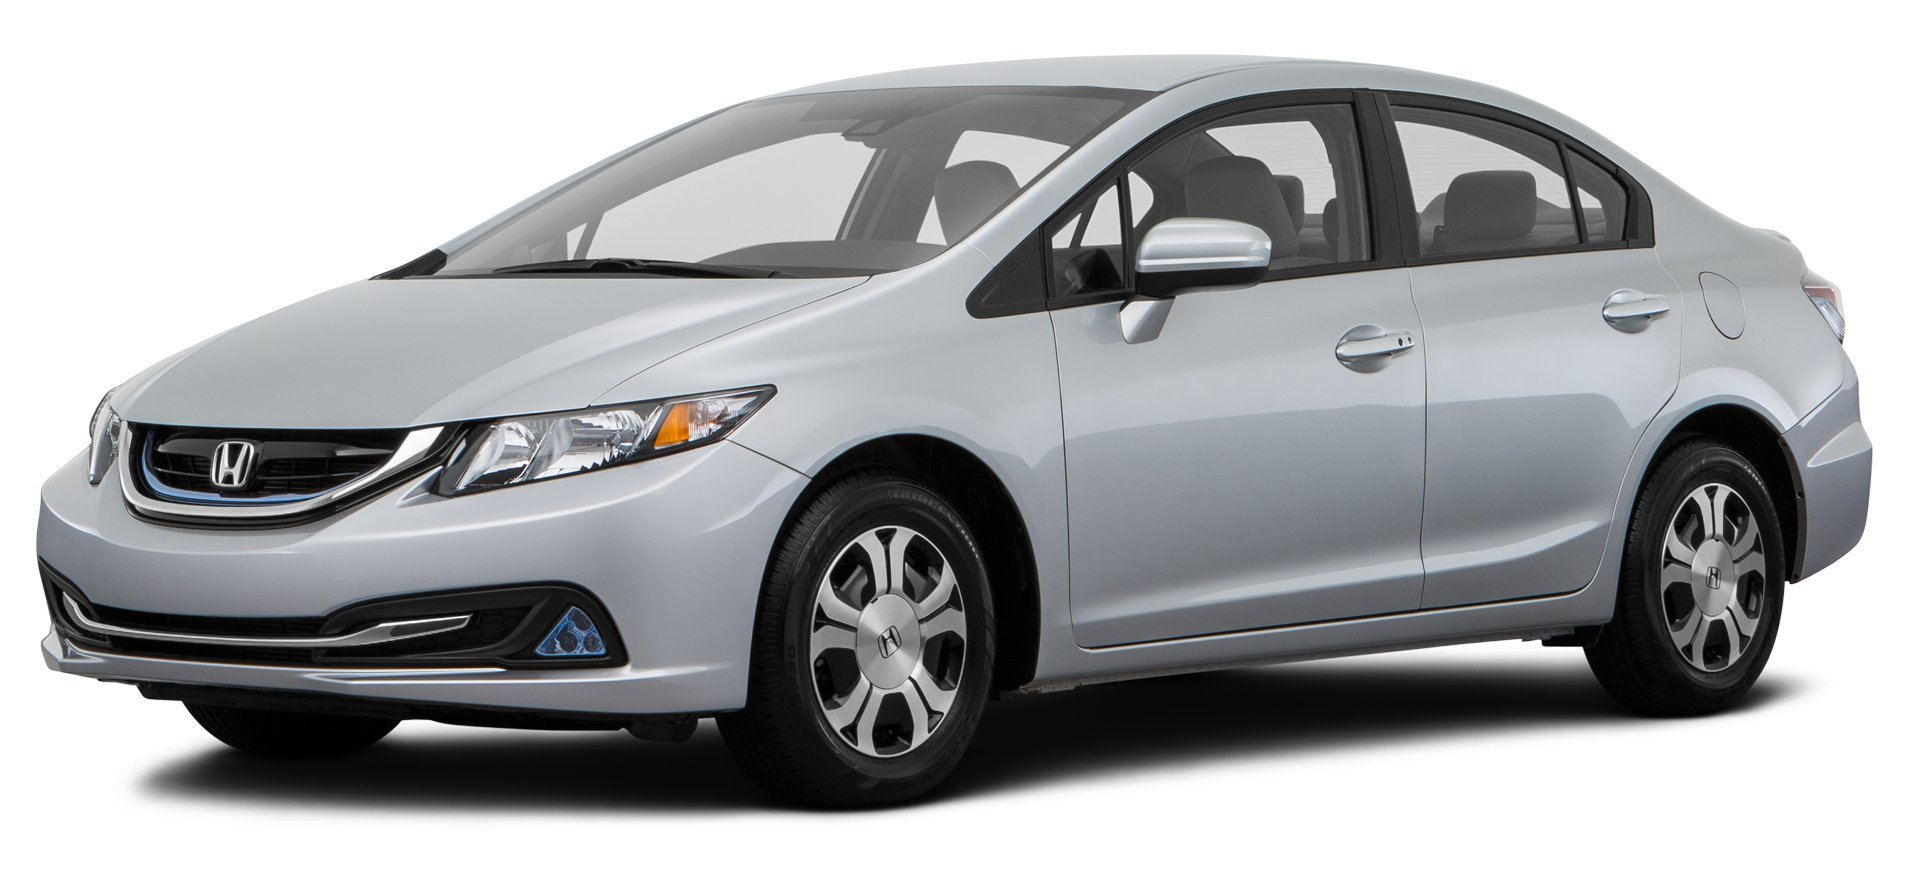 2015 Honda Civic, 4-Door Sedan 4-Cylinder CVT ...